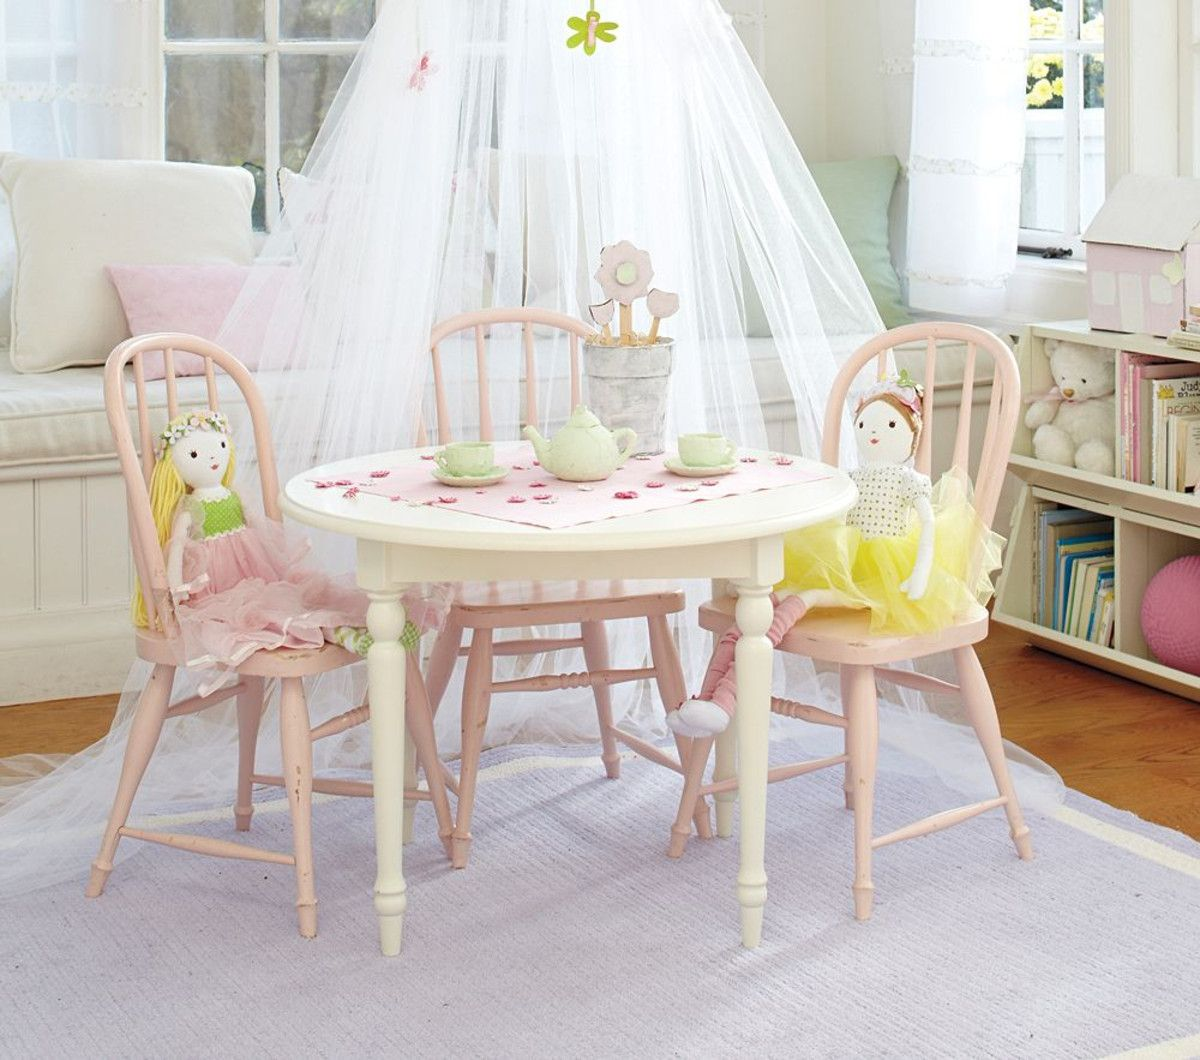 another table \u0026 chair set from Pottery Barn Kids & Timeless appeal- the PBK Finley Play Table \u0026 Chairs with Tulle ...